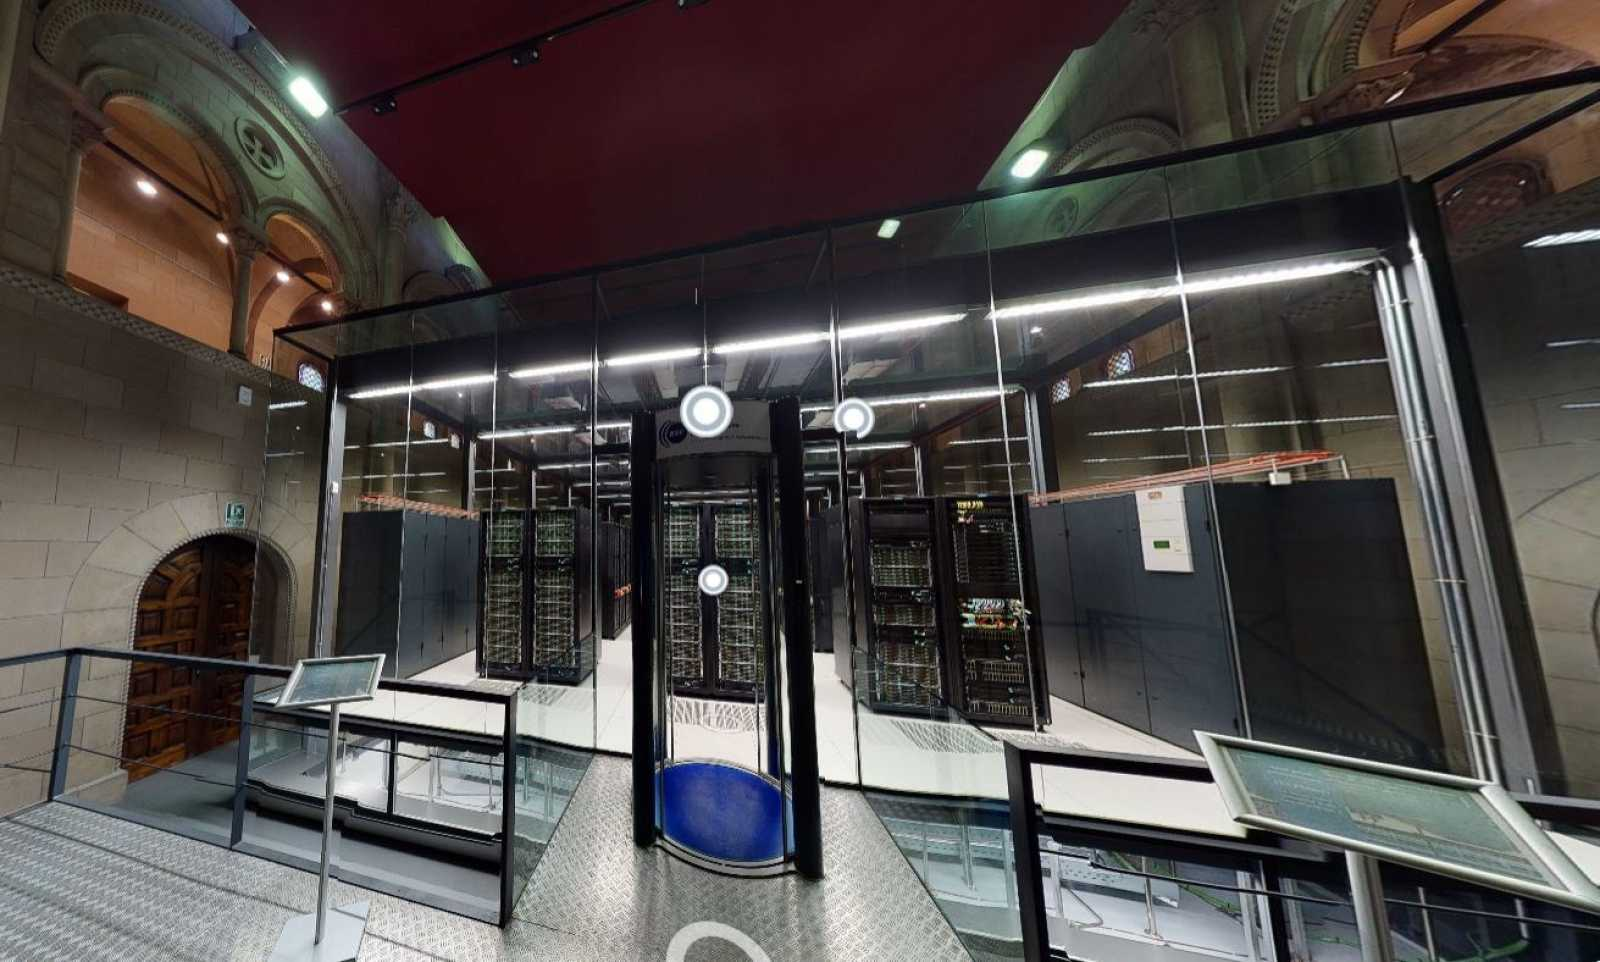 L'altra ràdio - Visita virtual al supercomputador Mare Nostrum